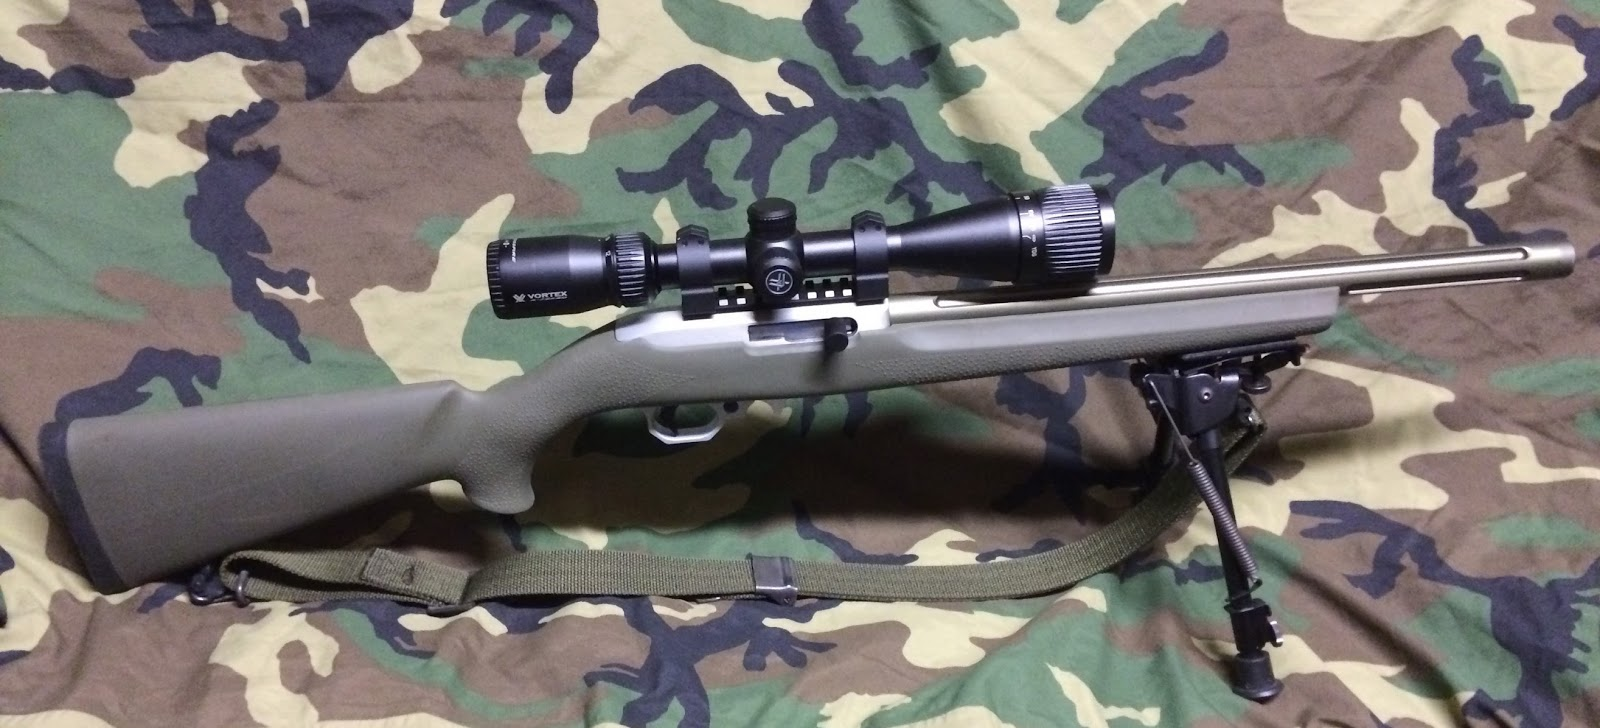 http://northwestexpeditions.blogspot.com/2014/03/od-ruger-1022.html